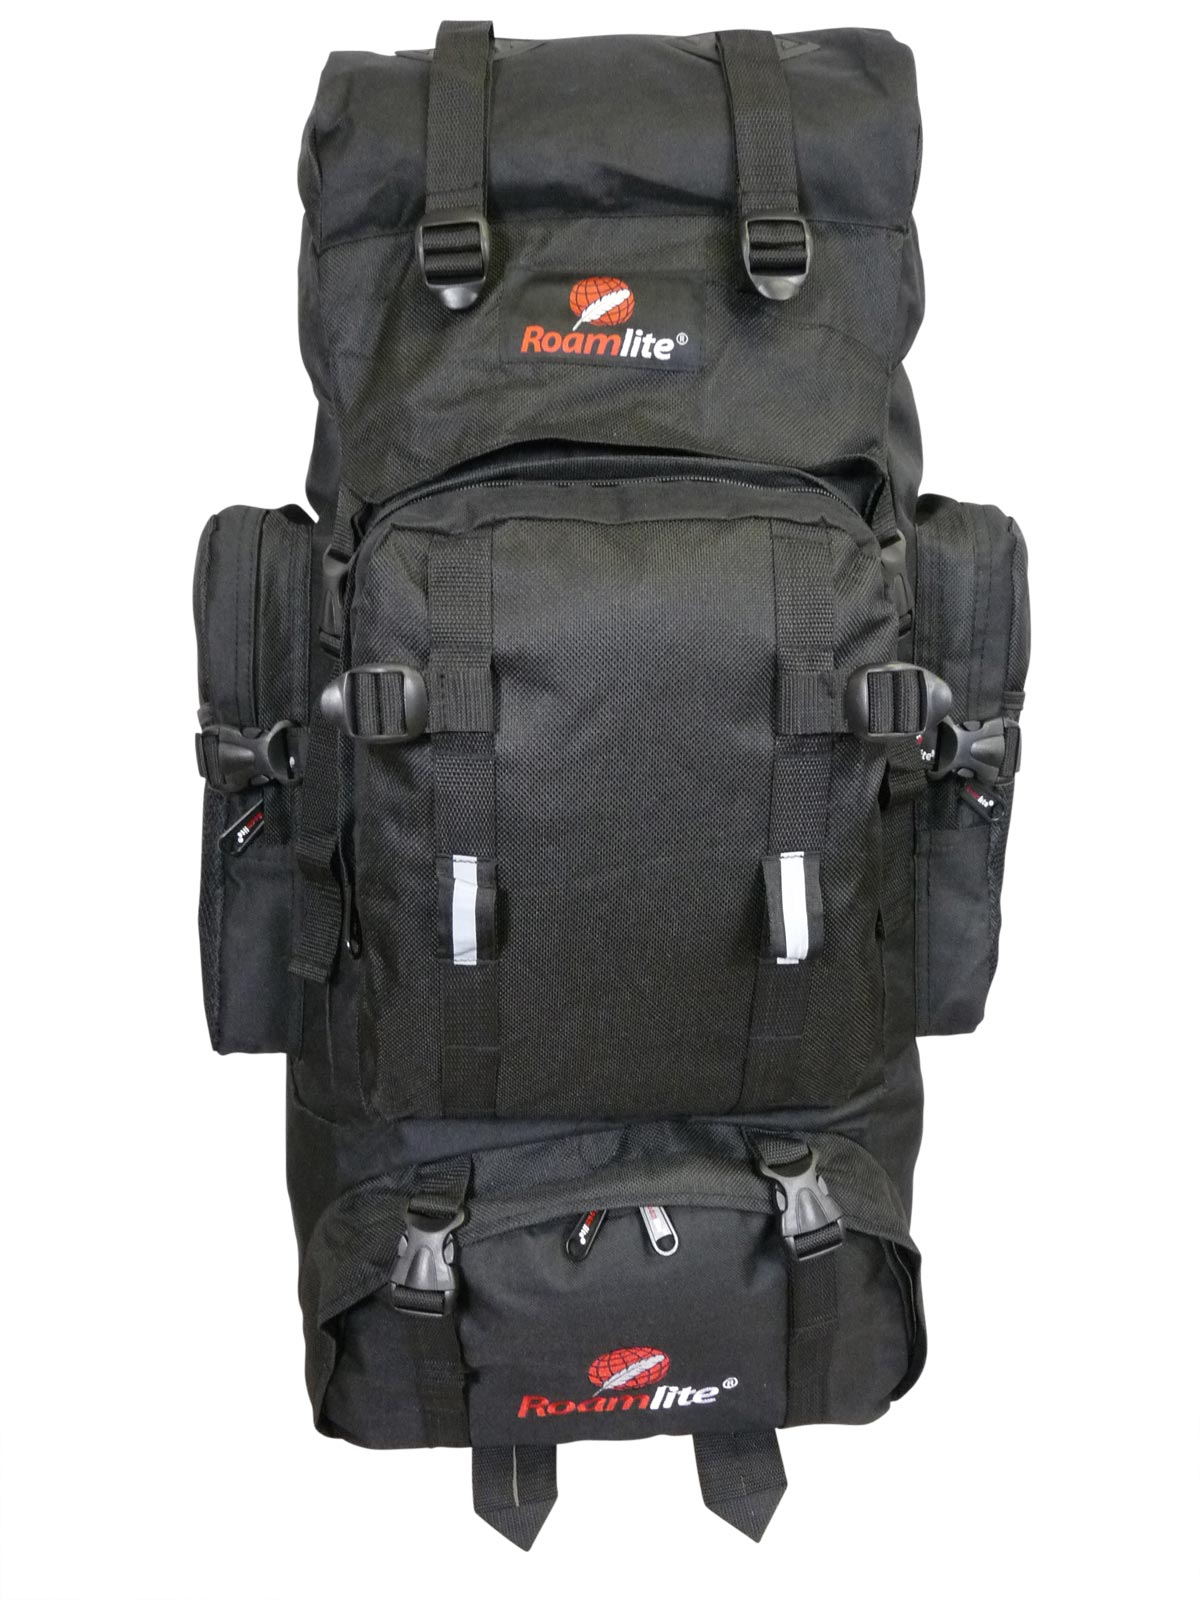 Large XL Camping Festival Backpack RL15KK